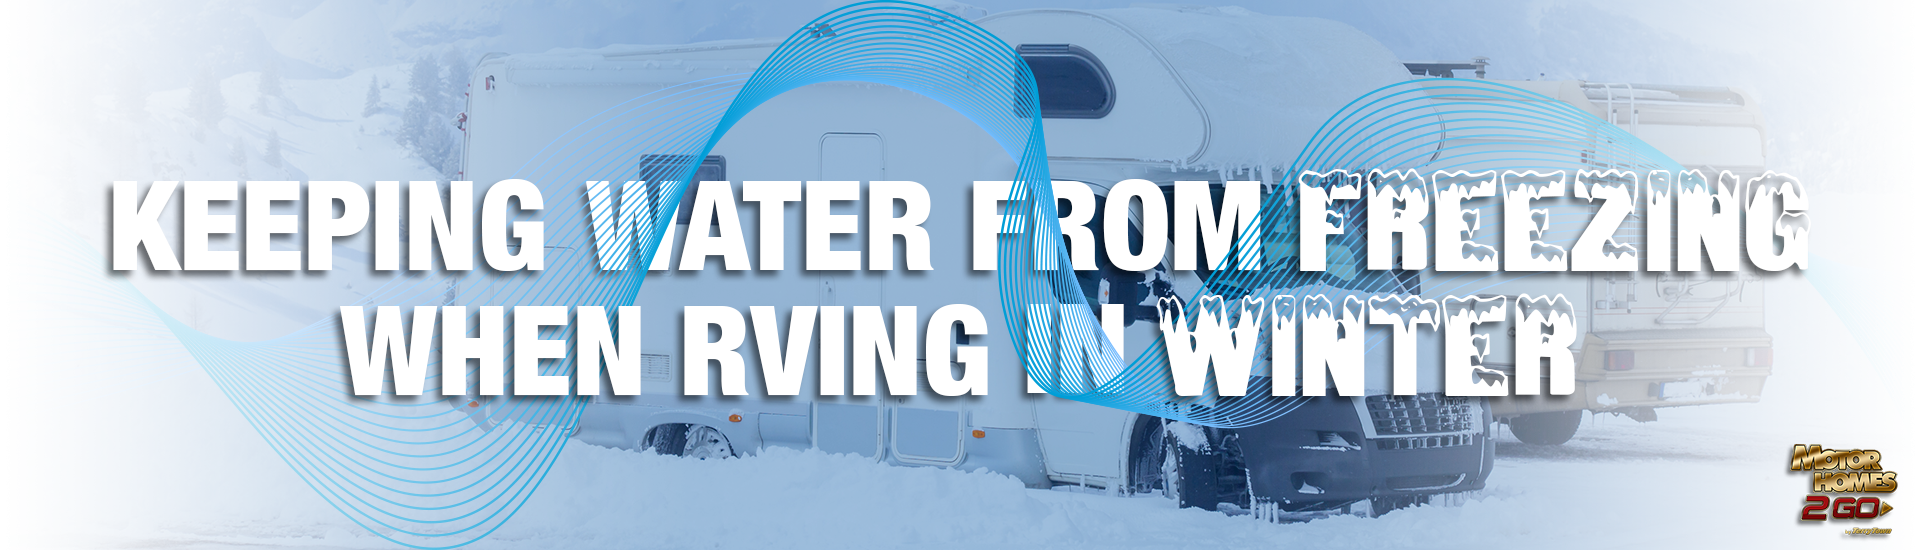 Keeping Water From Freezing When RVing In Winter